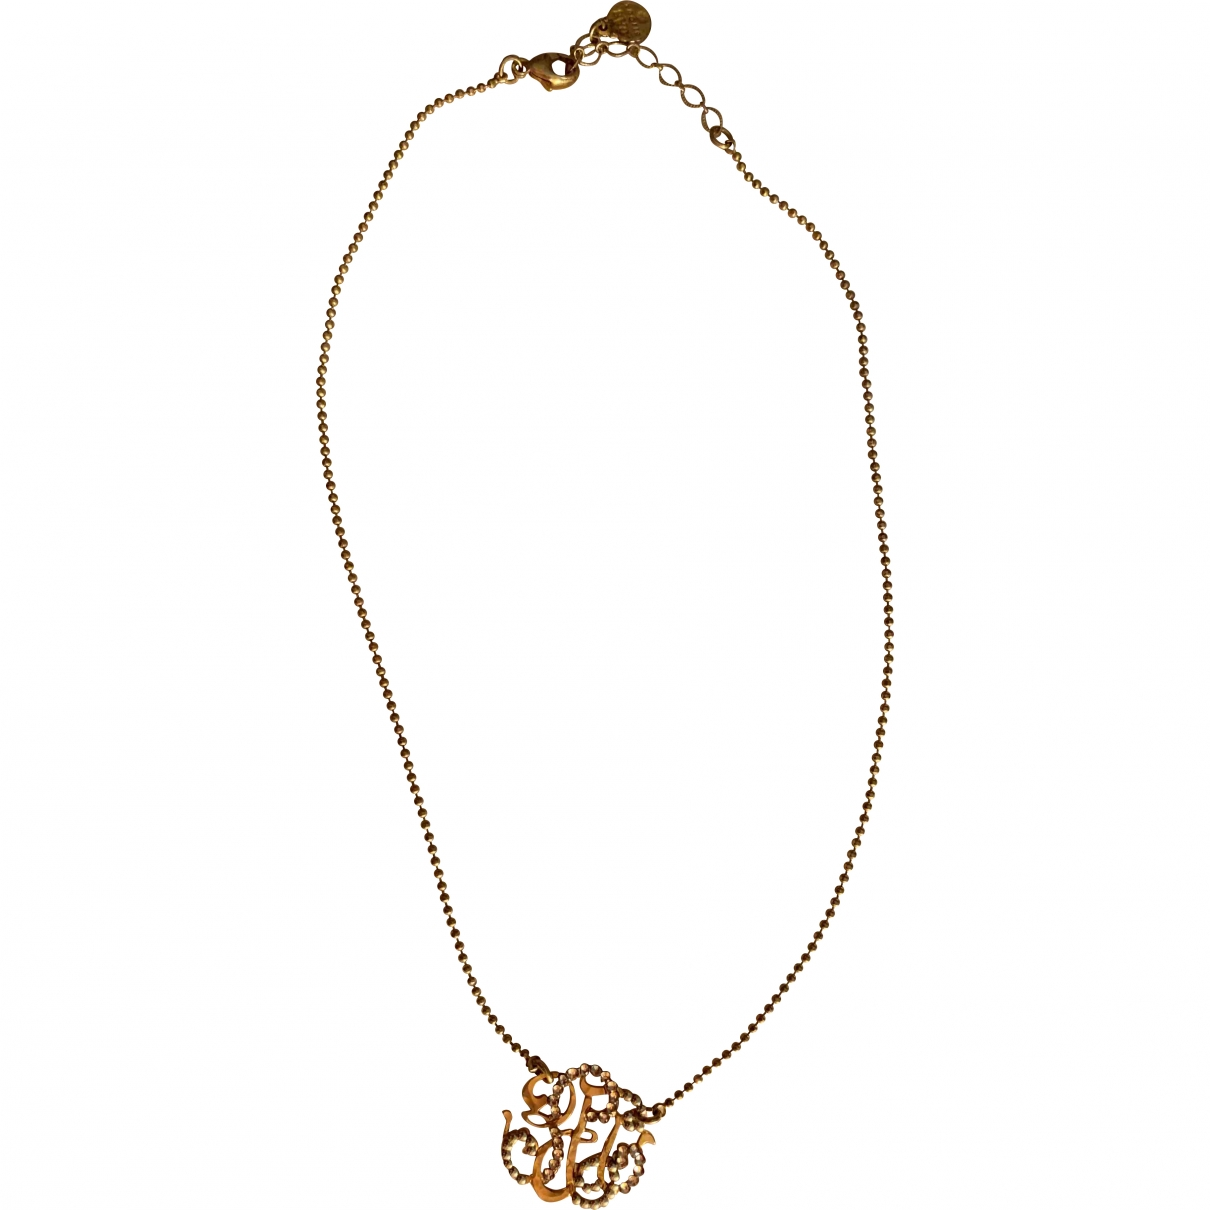 Gas - Collier Arabesque pour femme en plaque or - dore